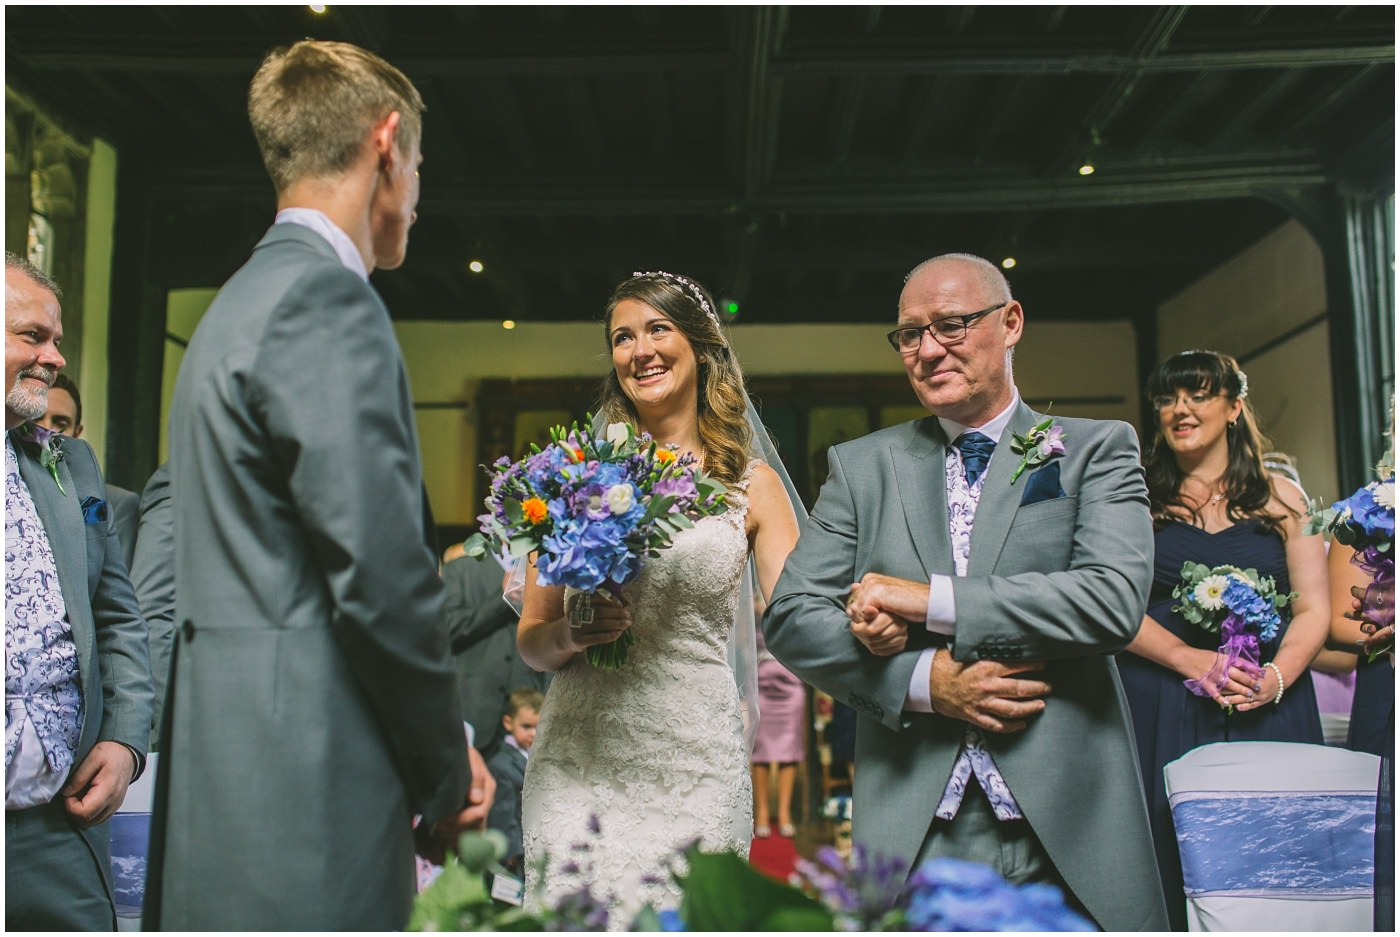 bride smiles at her groom as she arrives for wedding ceremony